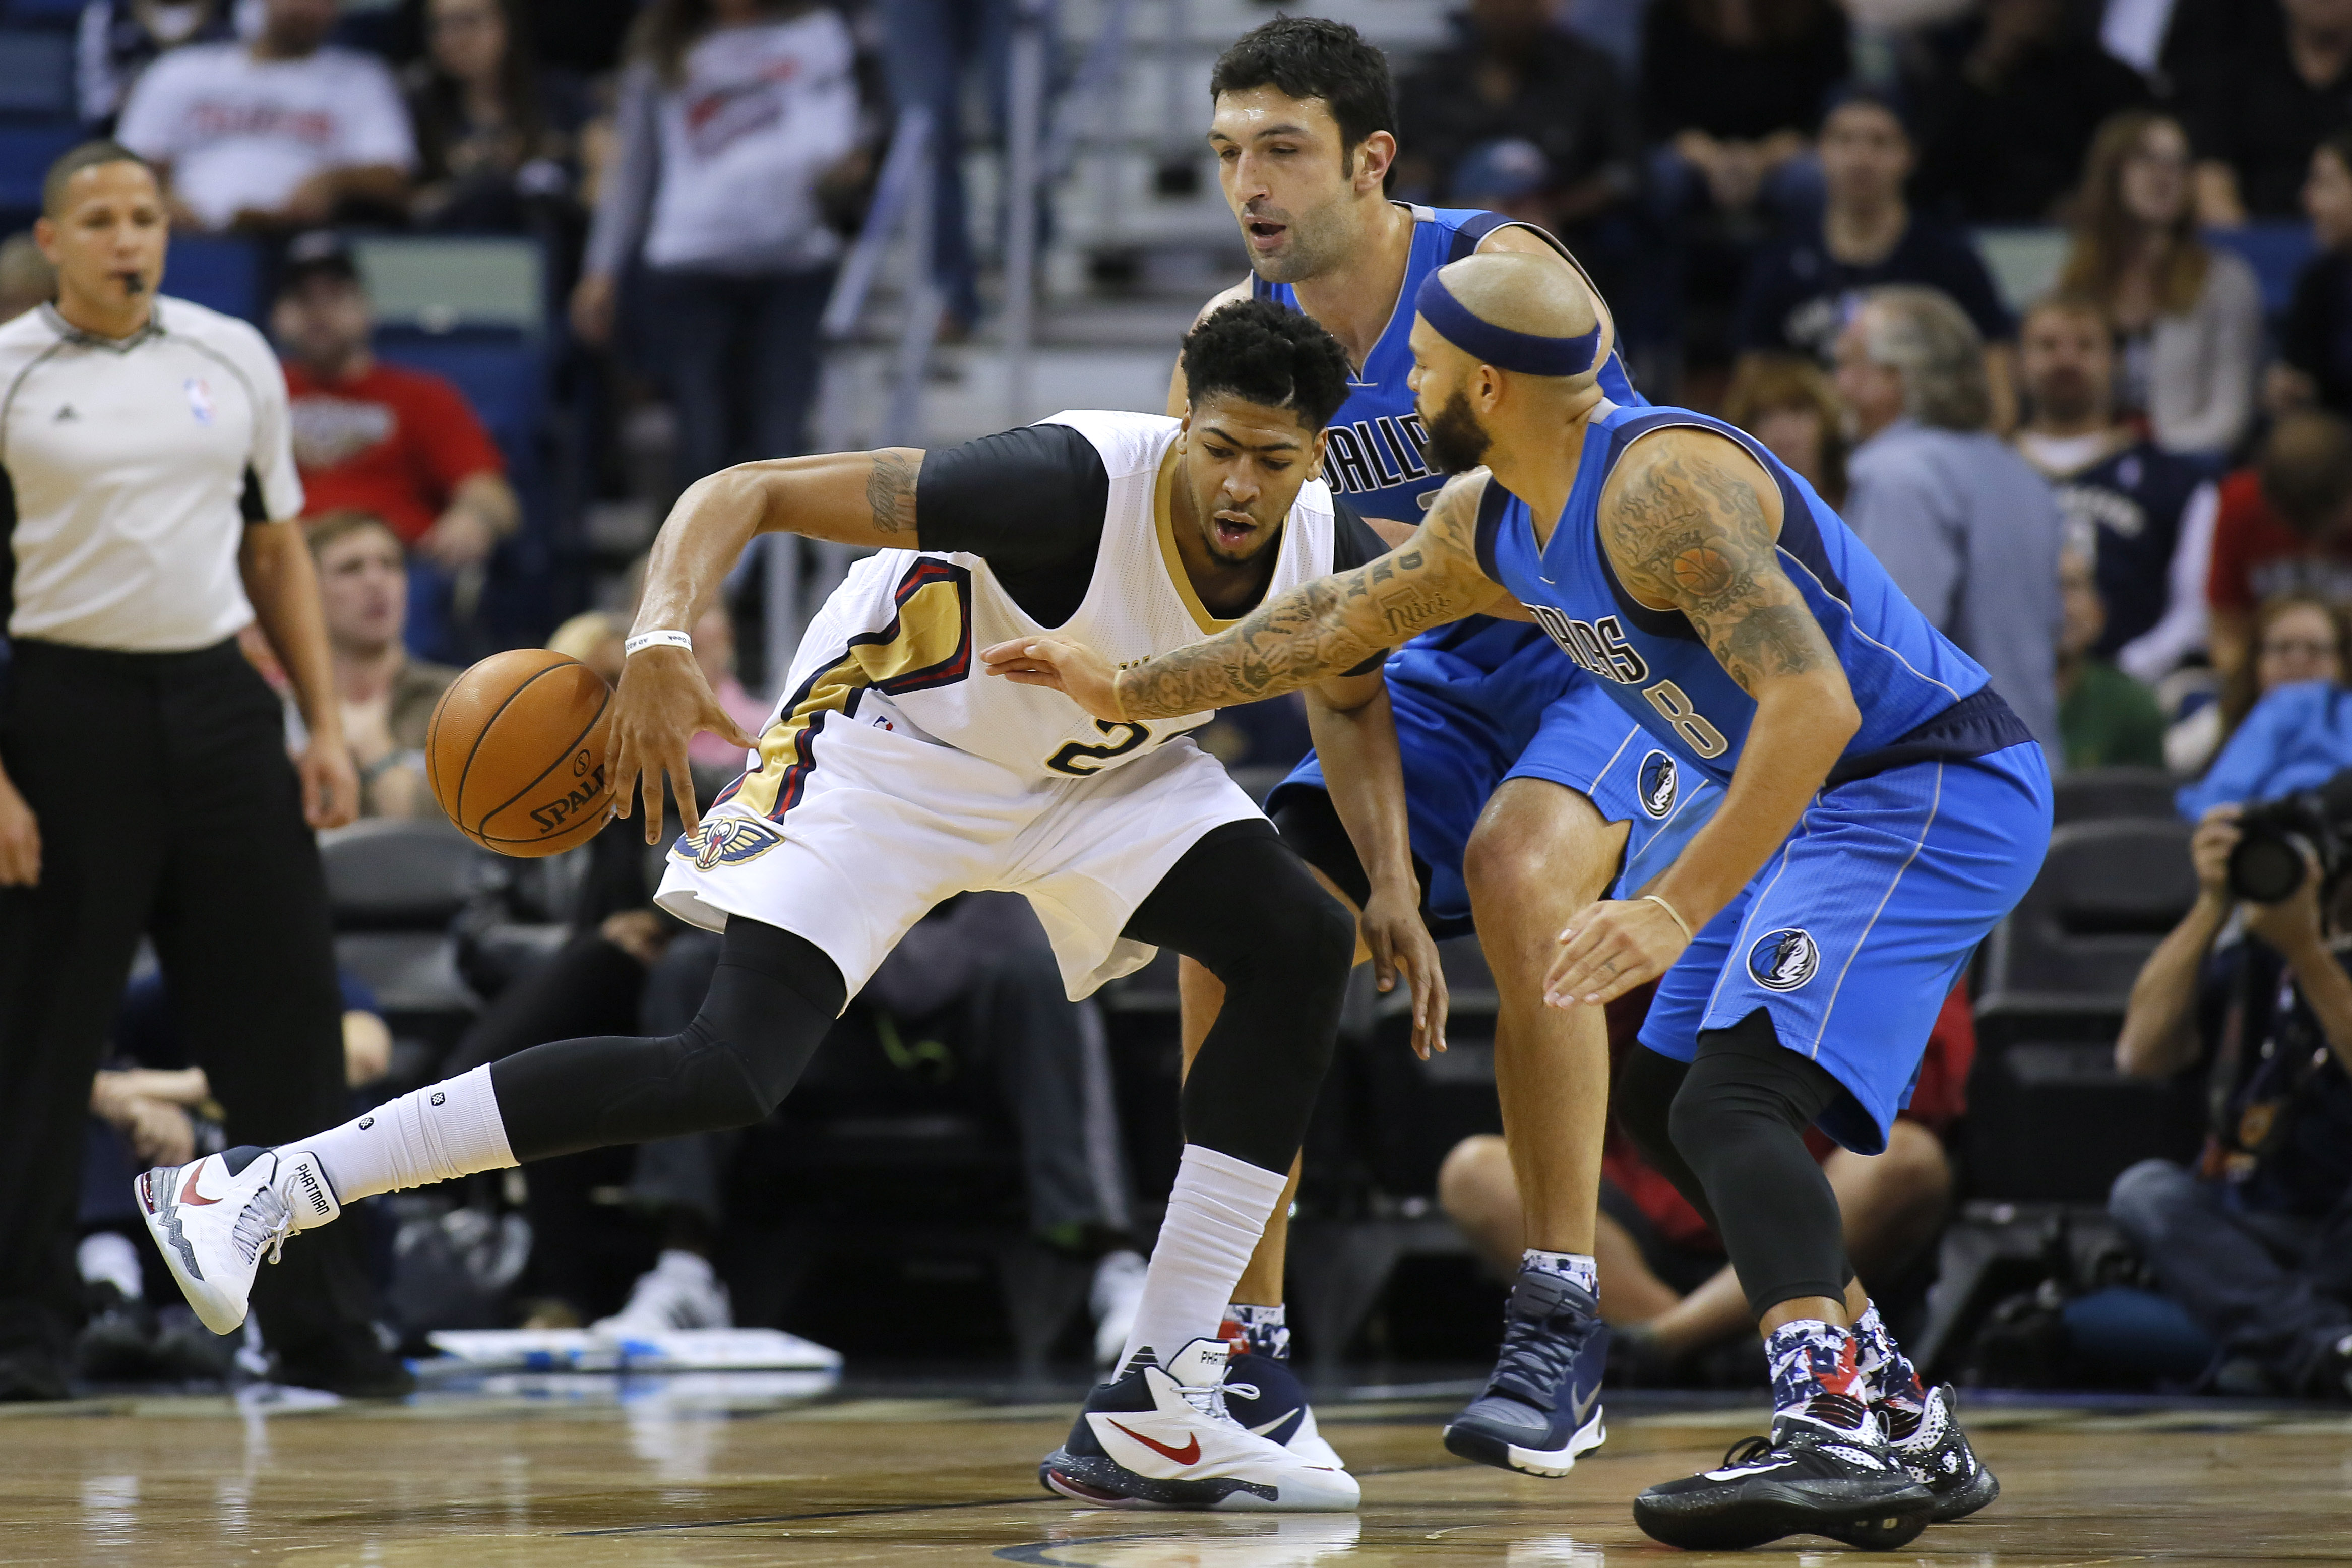 Dallas Mavericks guard Deron Williams (8) strips the ball from New Orleans Pelicans forward Anthony Davis, left, during the first half of an NBA basketball game Tuesday, Nov. 10, 2015, in New Orleans. Davis left the game with a hip injury late in the firs